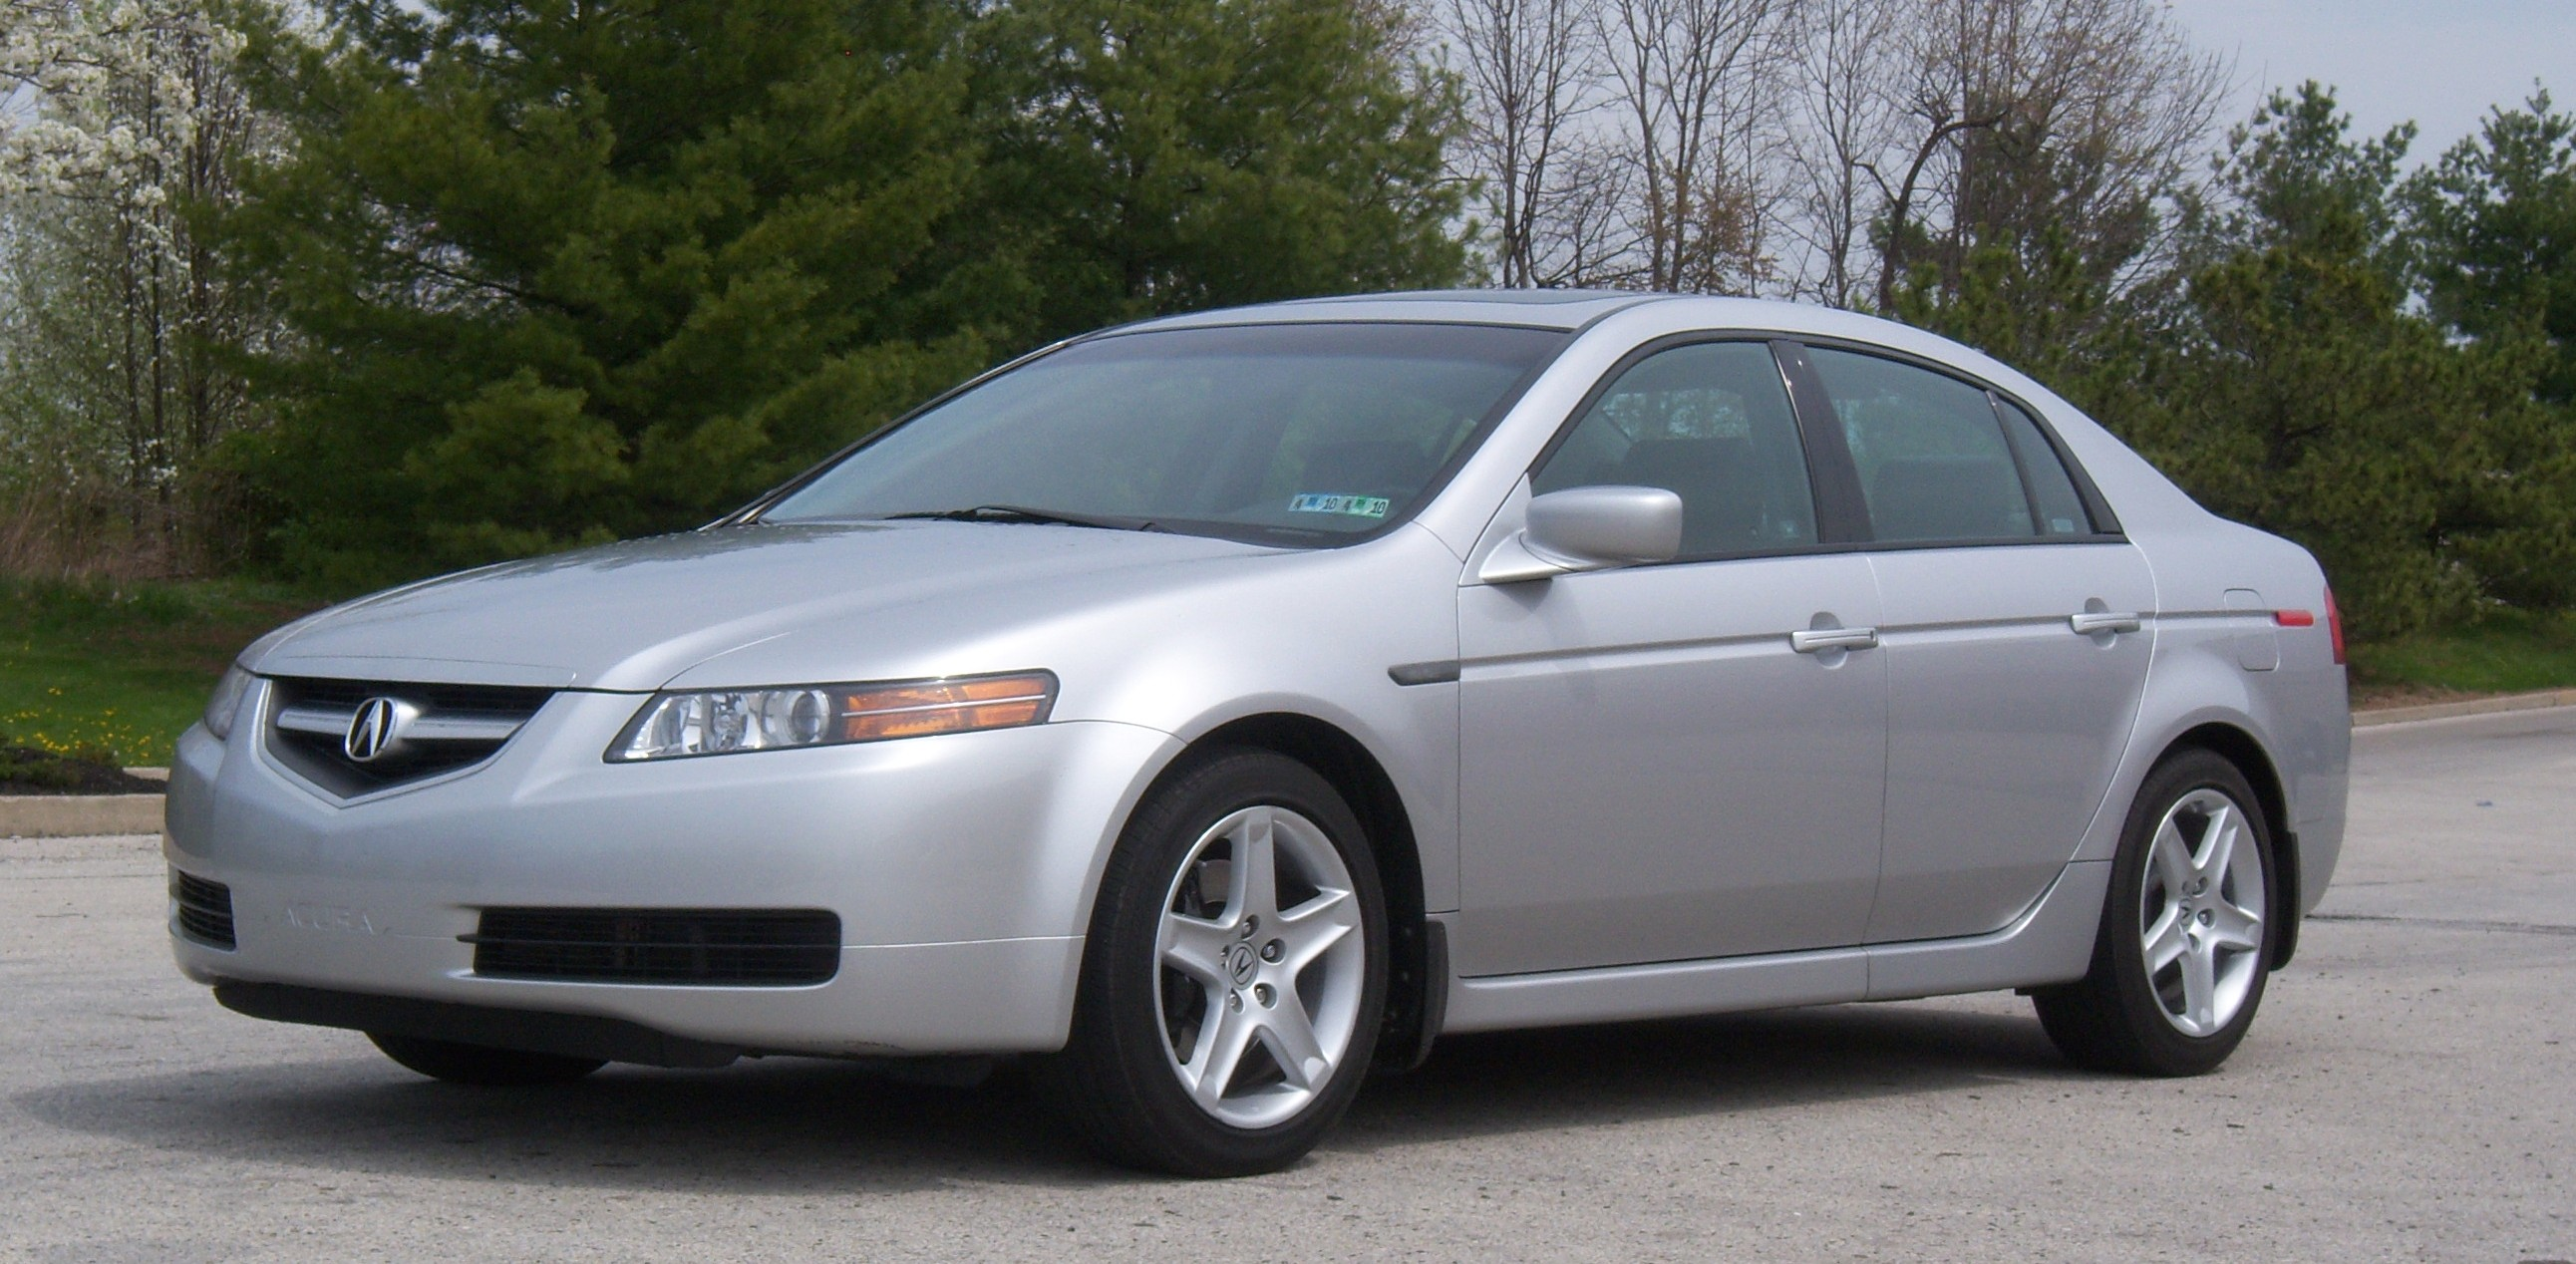 acura tl images #1